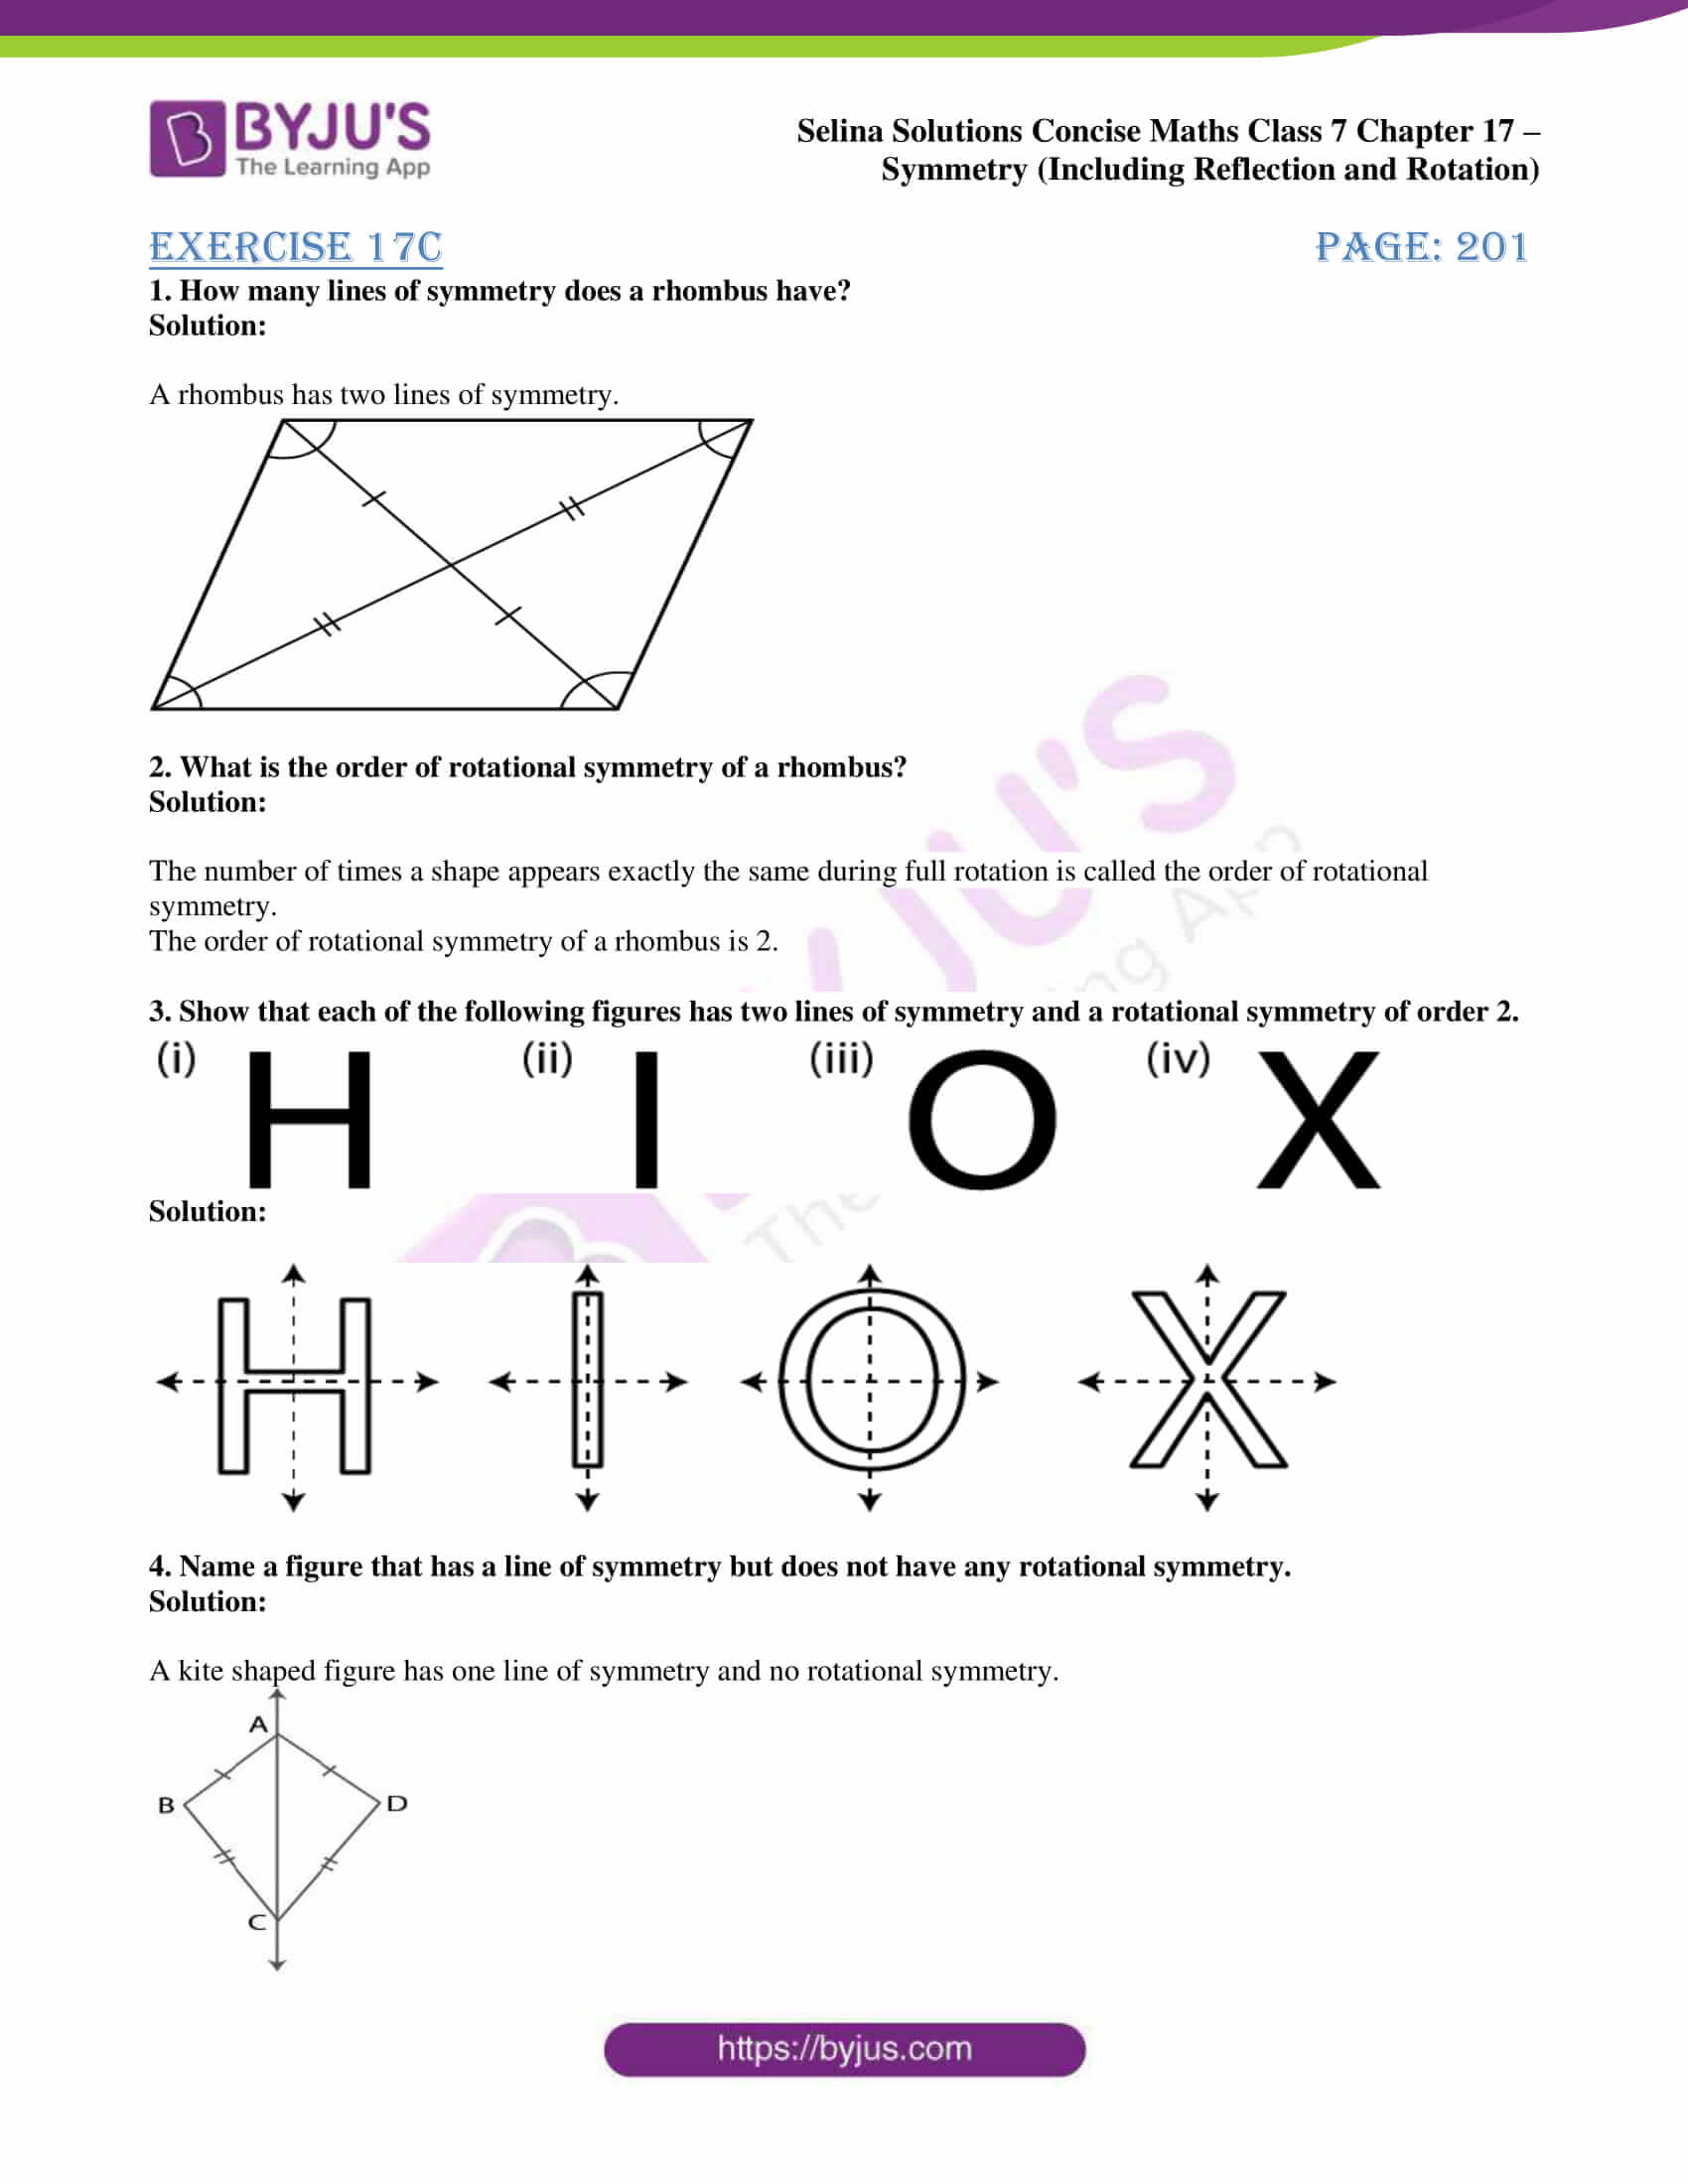 selina sol concise maths class 7 chapter 17 ex c 1